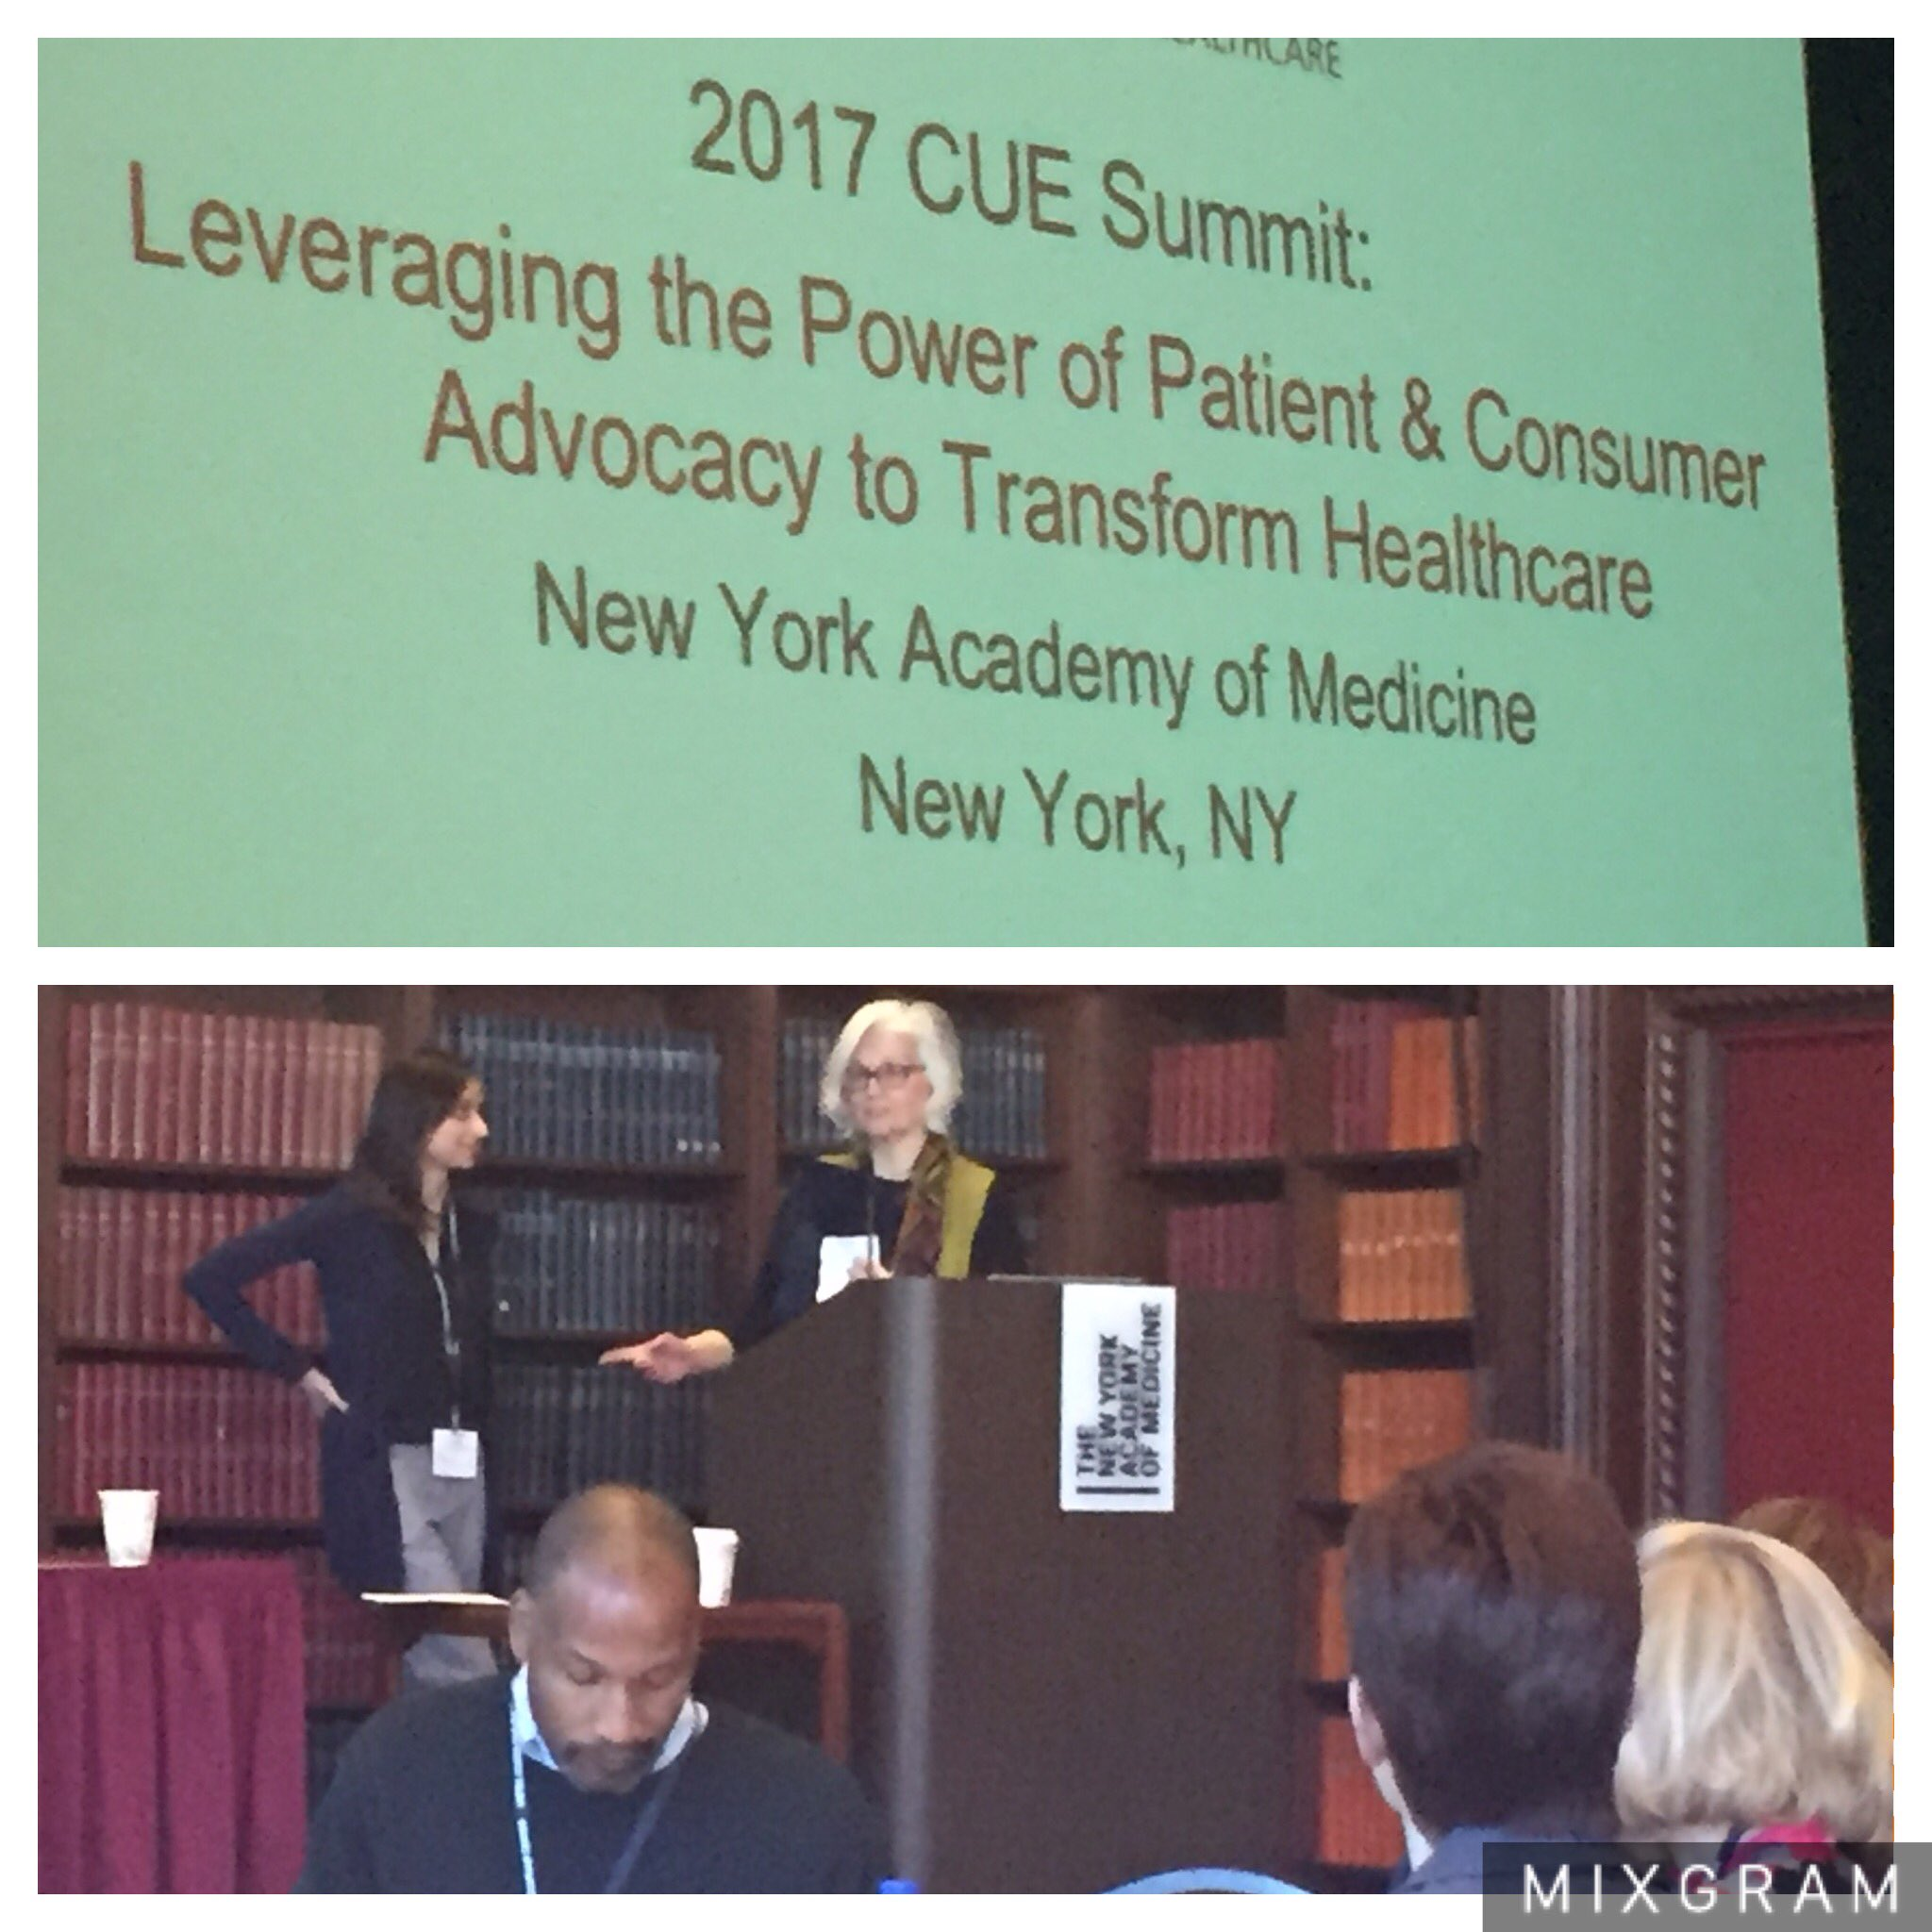 Now open: Summit on leveraging the power of patient and consumer advocacy! #CUESummit17 @KayDickersin https://t.co/eOvPxhFcLC